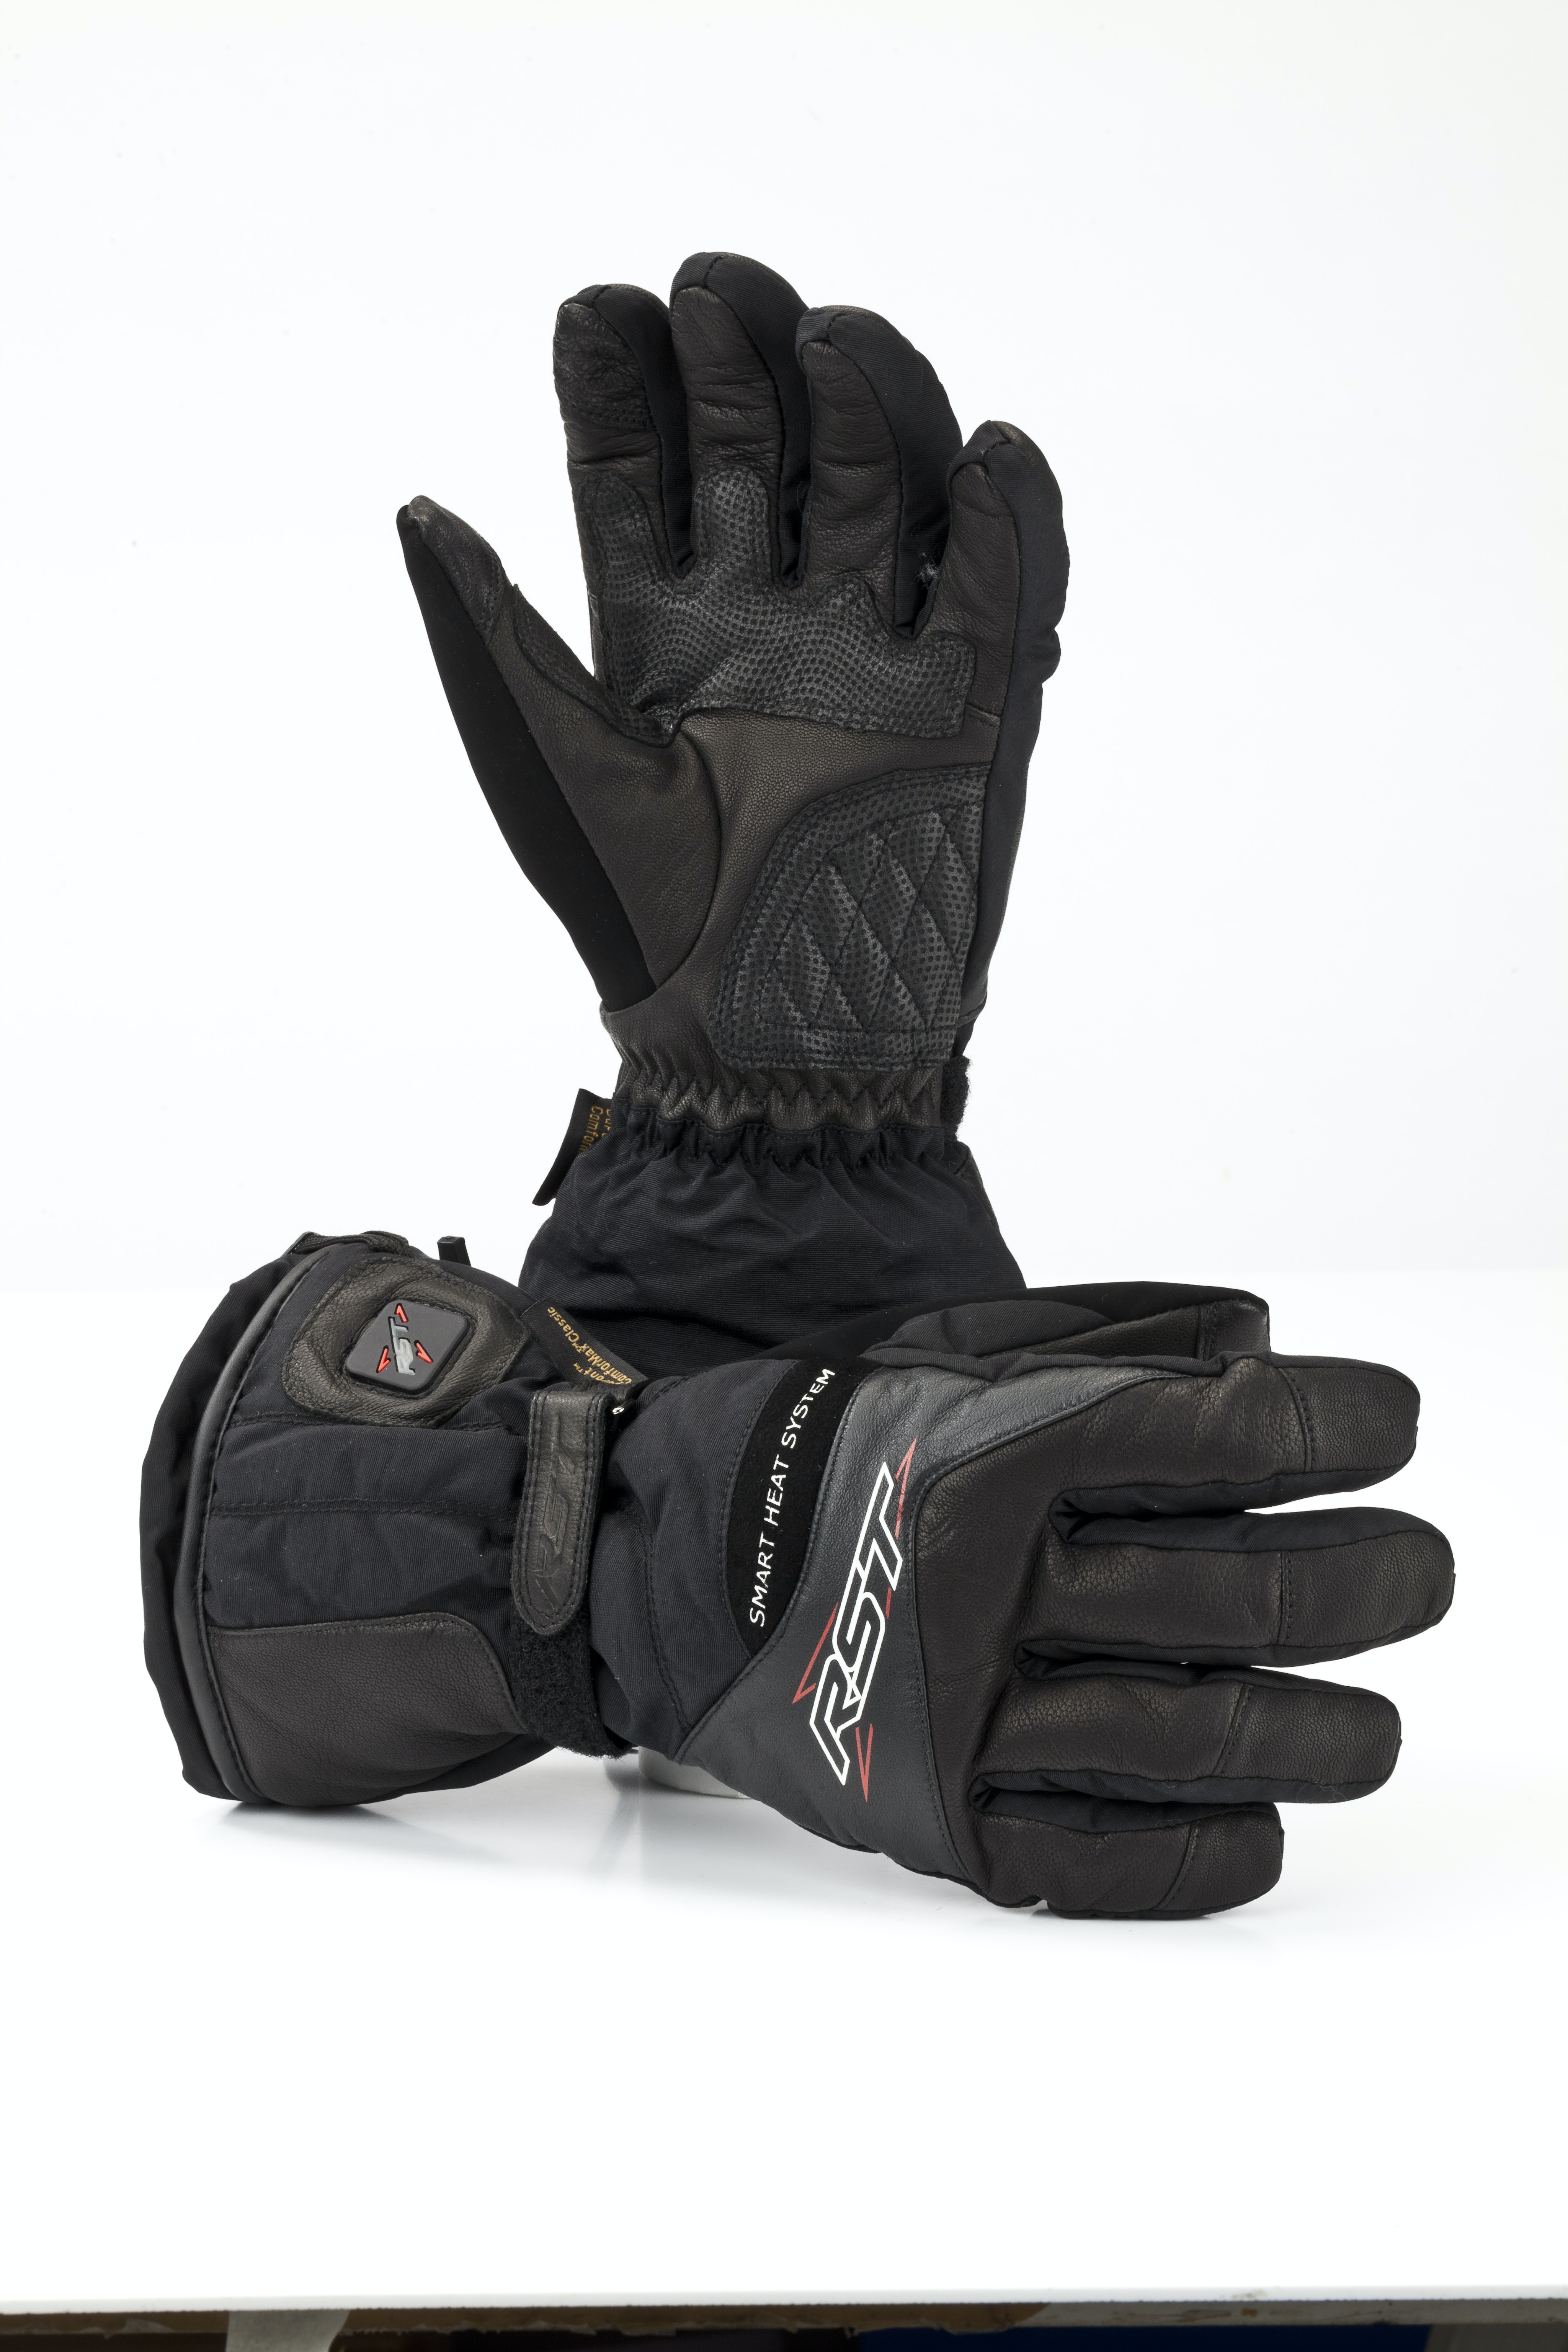 Rst thermotech